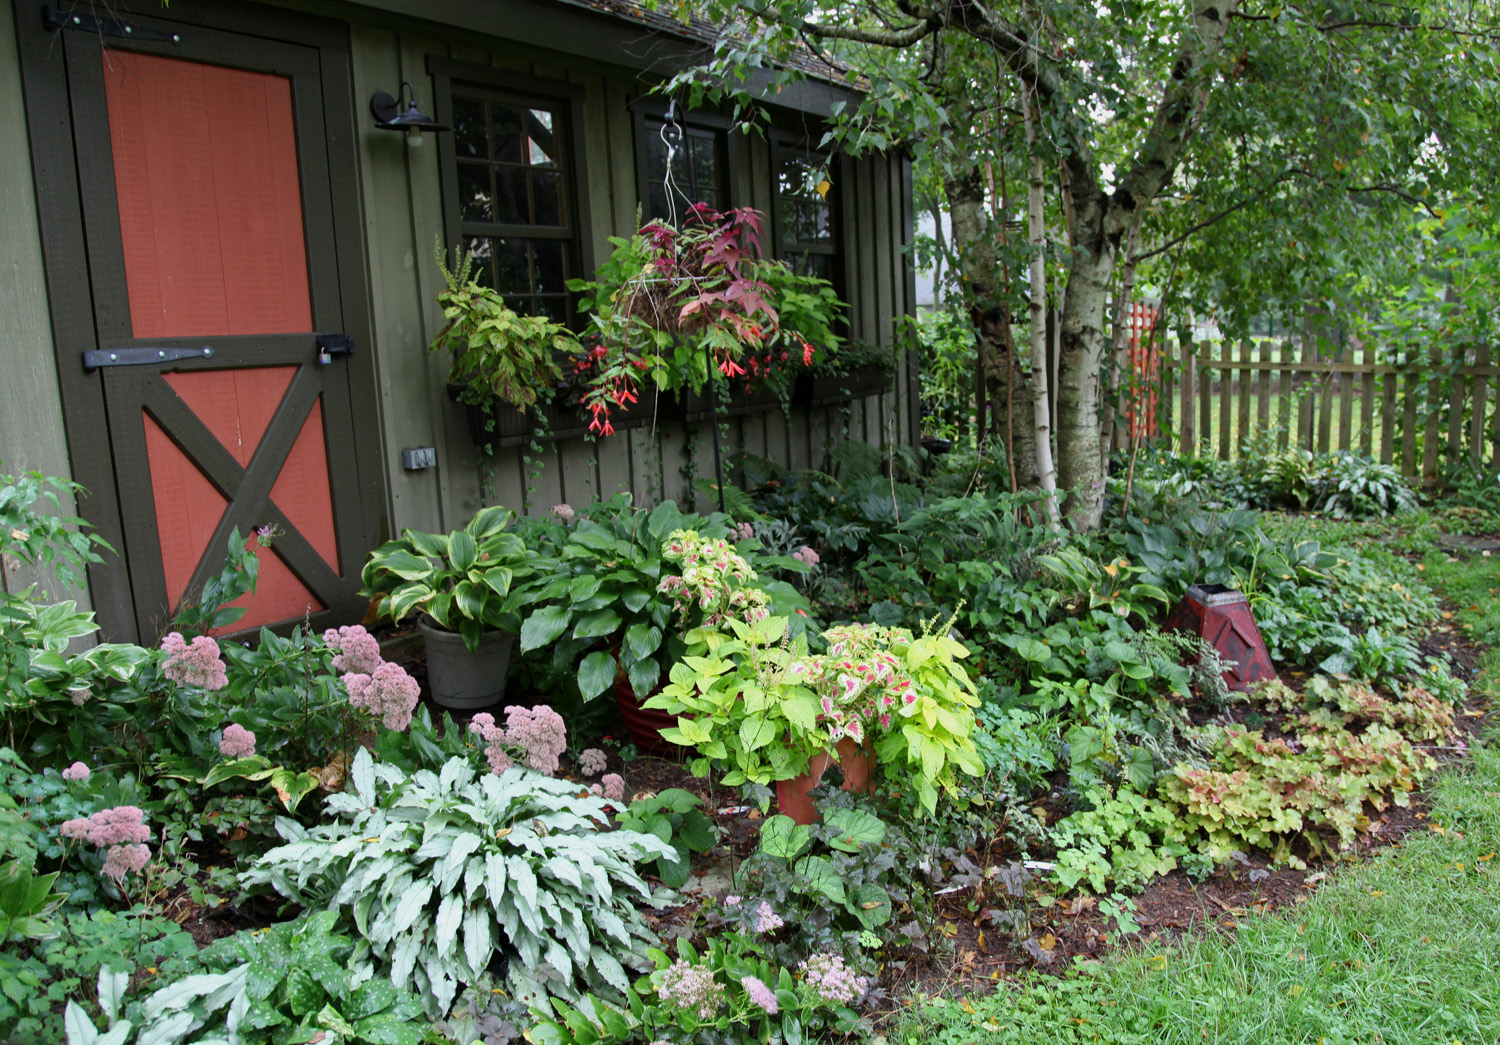 Garden Design With Shrubs : New plants from the scott arboretum plant sale carolyn s shade